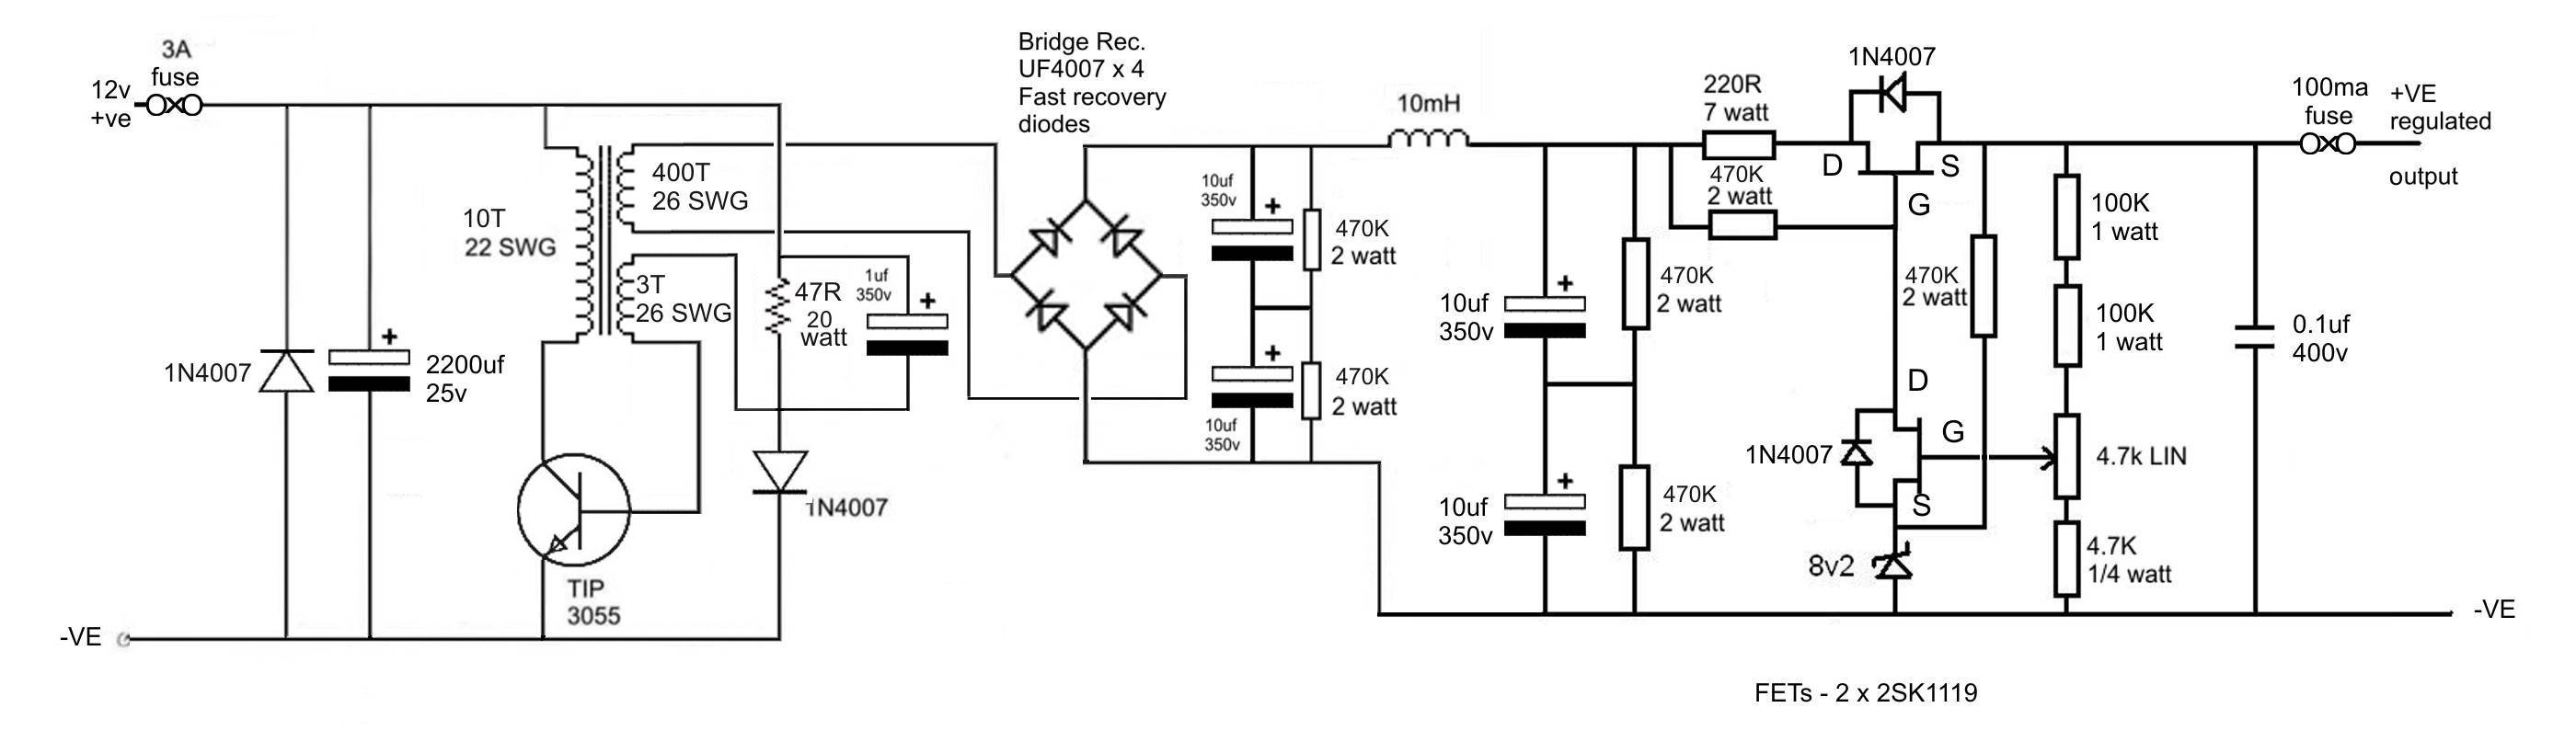 Ws62 Inverter 500 Watt Circuit Diagram Click On Image For Larger View Of Layout